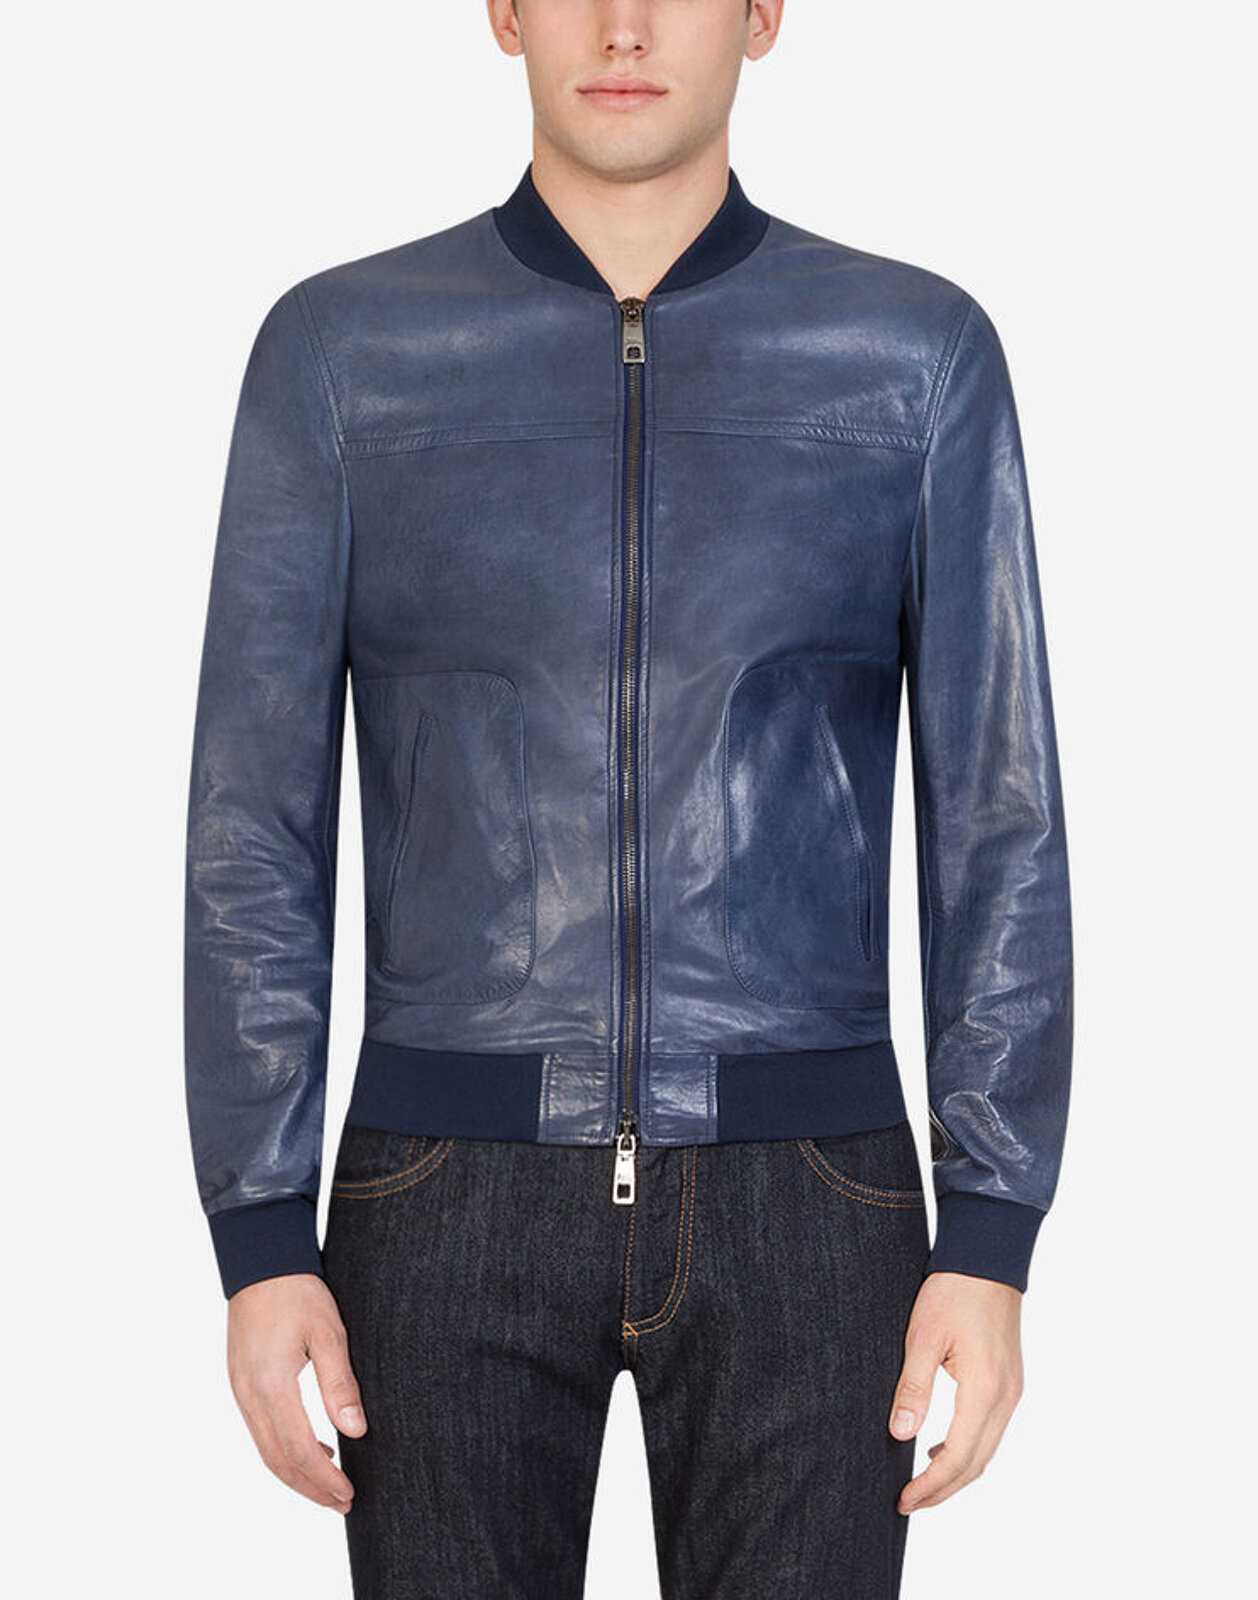 Leather Jacket With Zip - Dolce & Gabbana